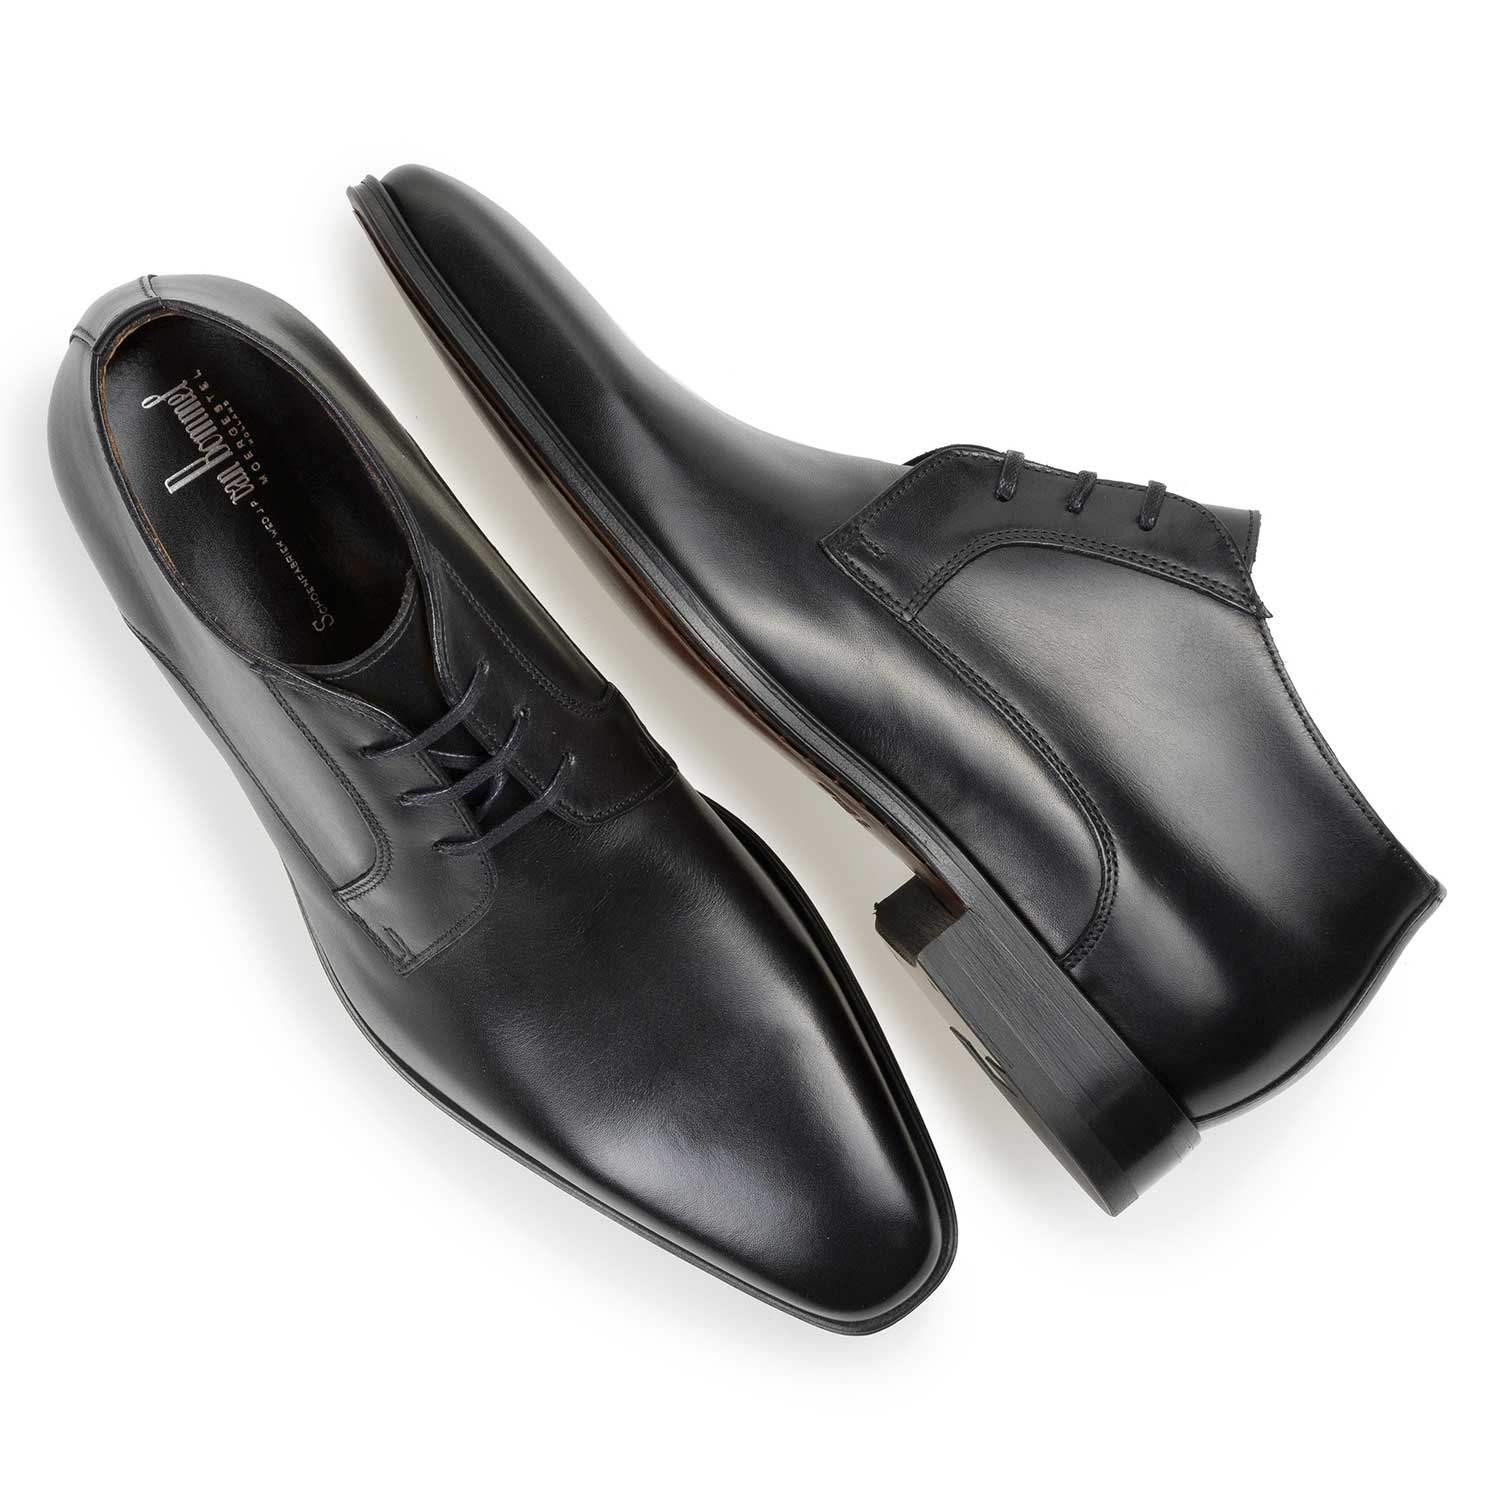 10599/00 - Black calf leather lace shoe